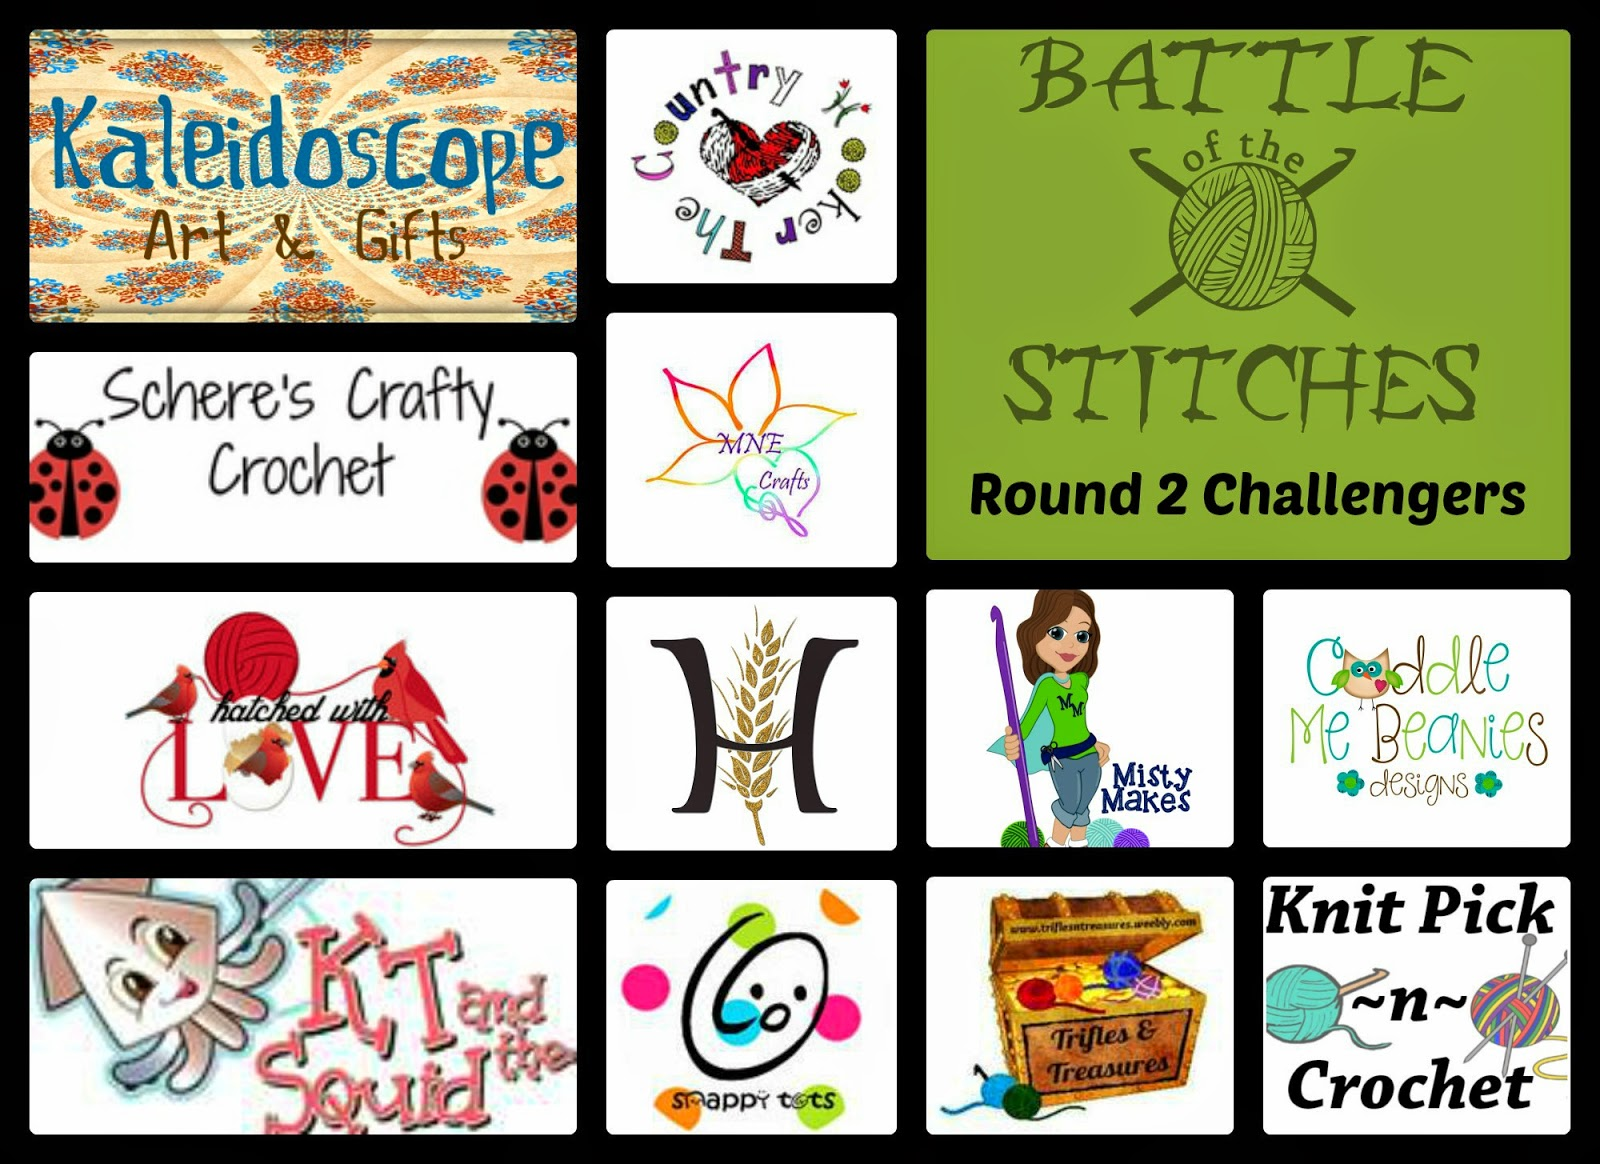 Round 2 Challengers for the Battle of the Stitches Crochet challenge